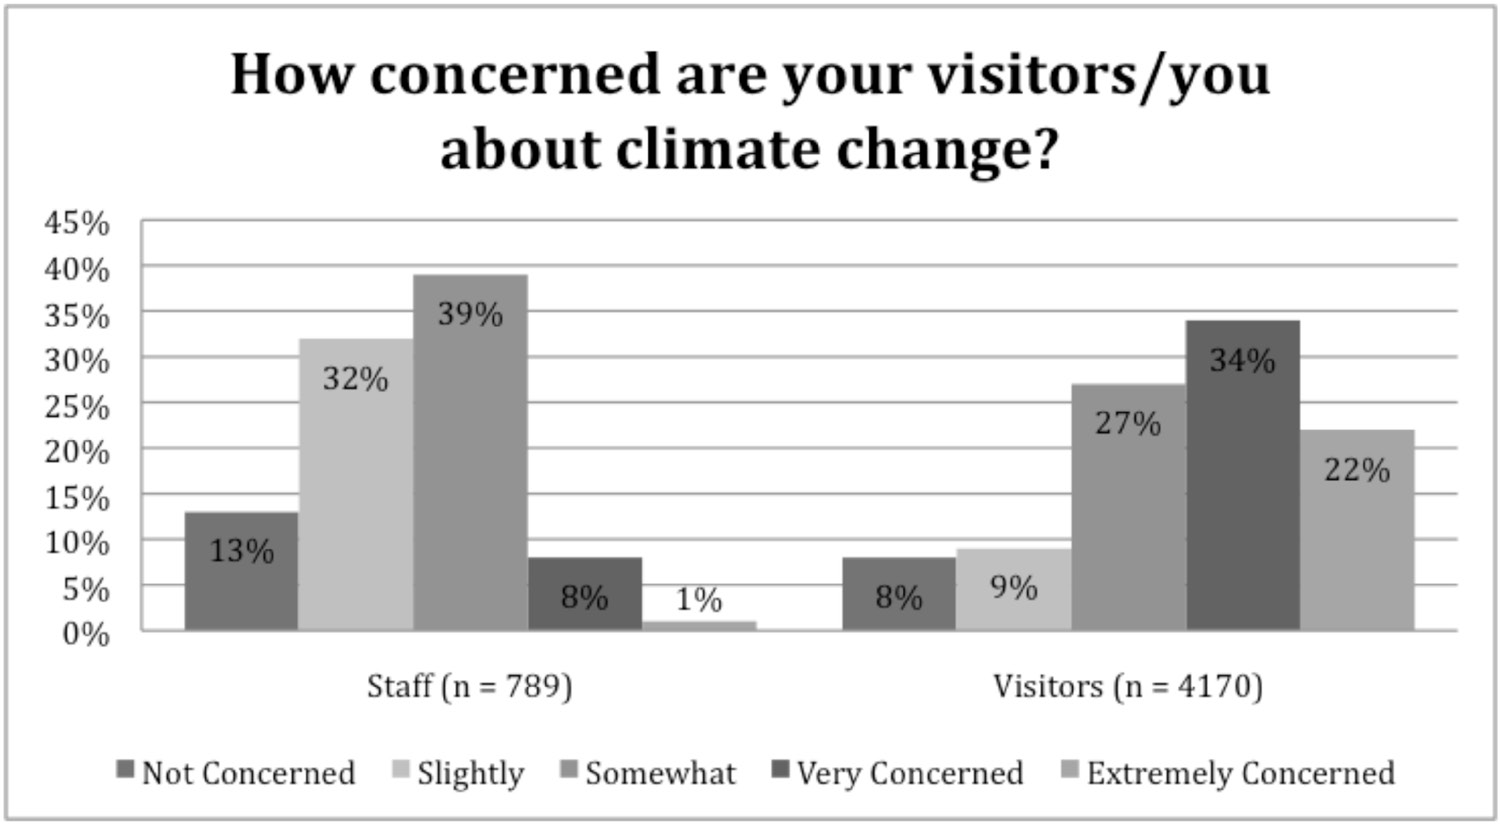 Figure 1. Comparison of staff (n = 789) perceptions of visitor concern regarding climate change and visitors (n = 4,170) reported climate change concerns. Figure 2.